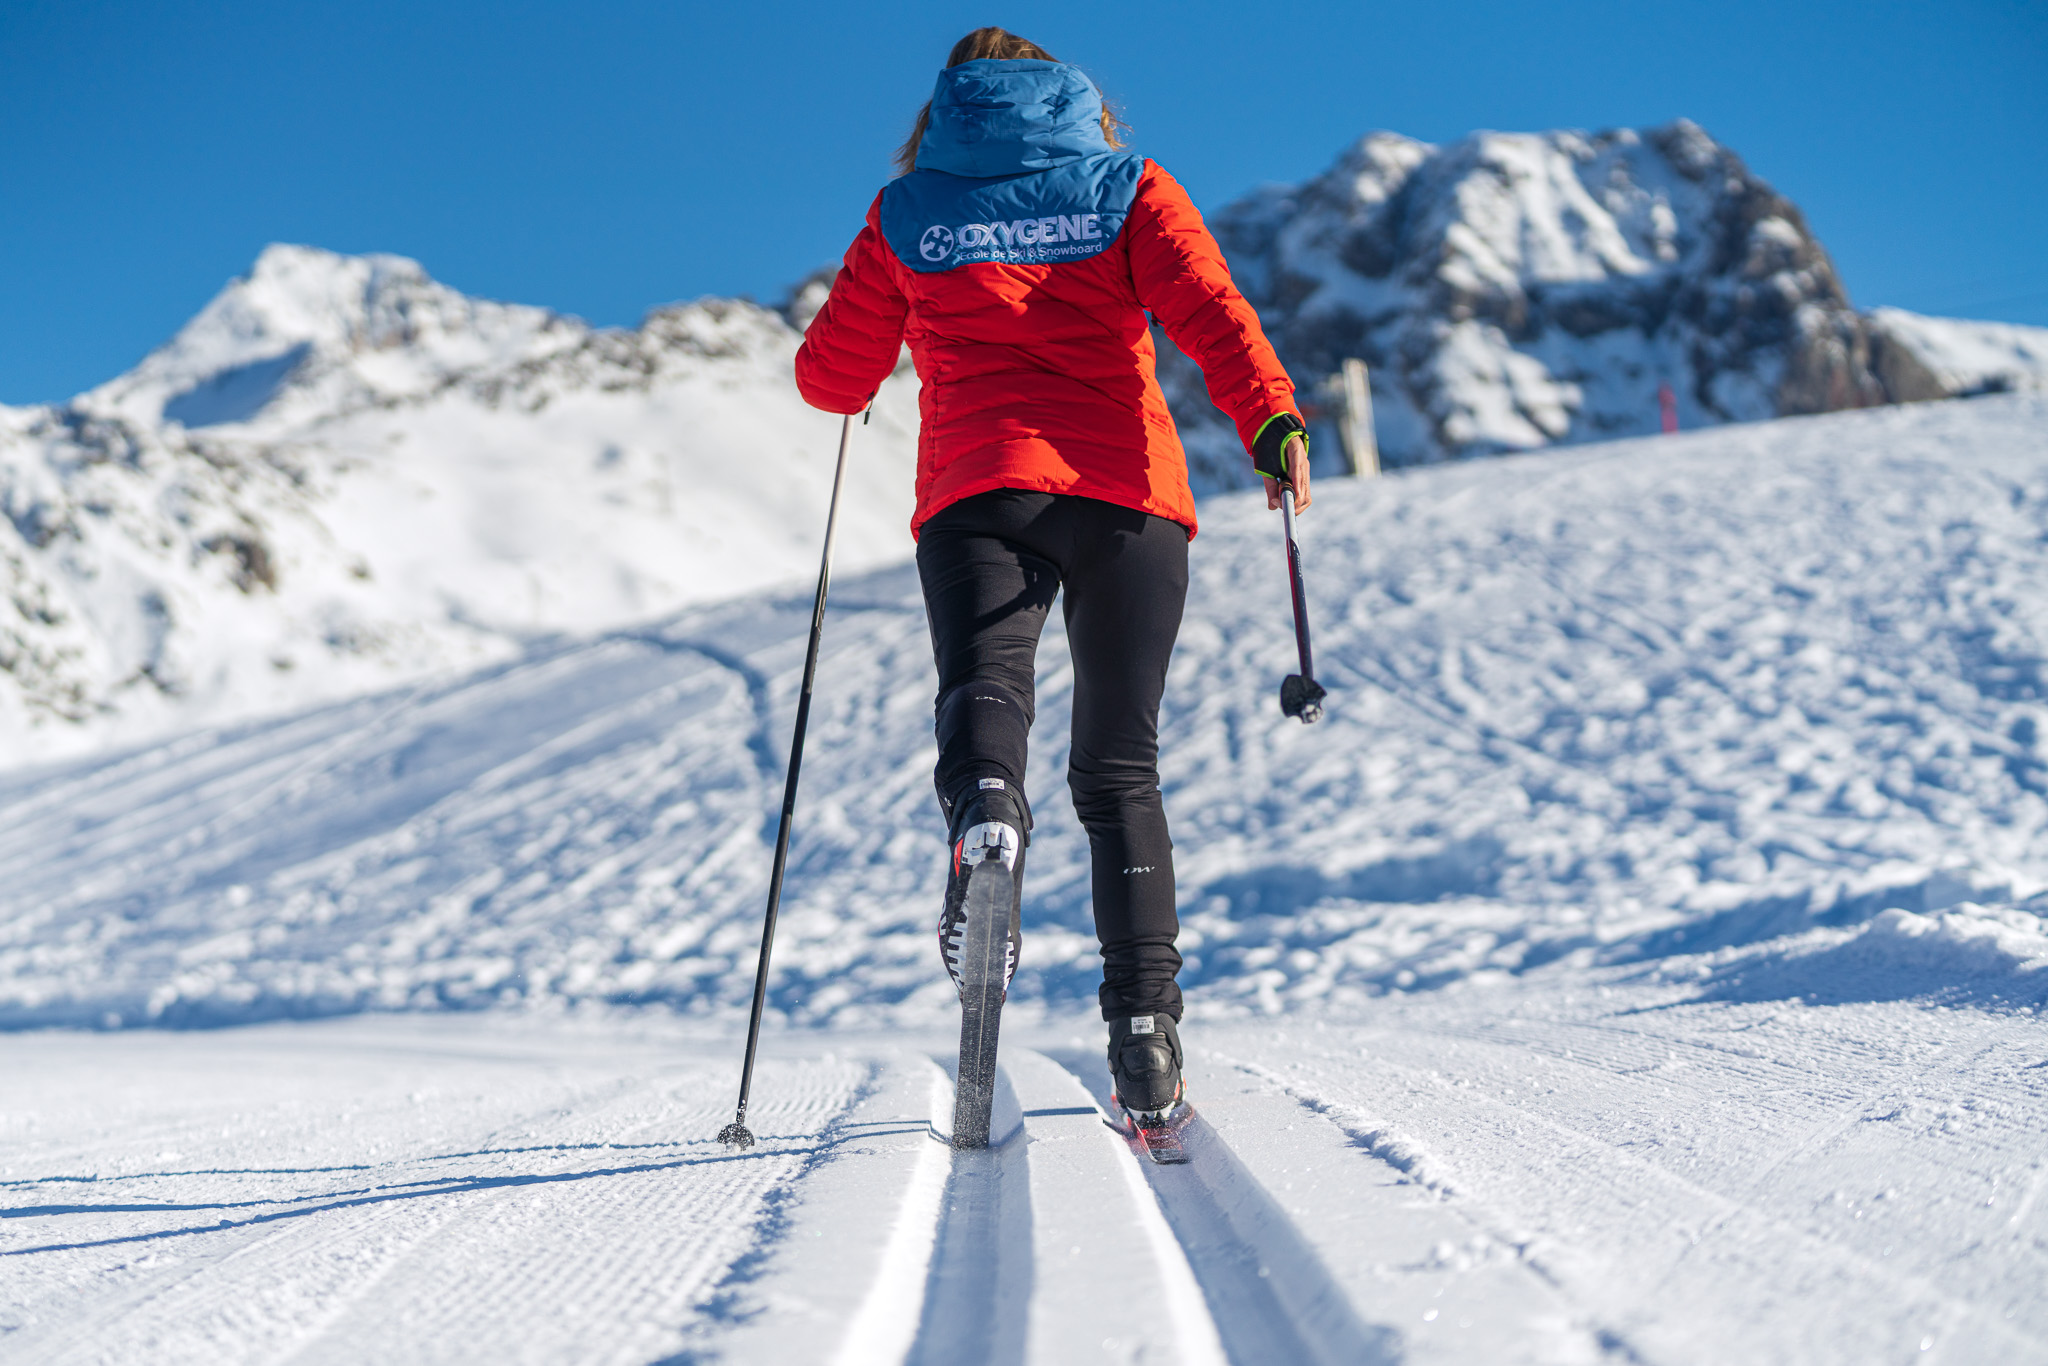 Cross-country skiing with Oxygene